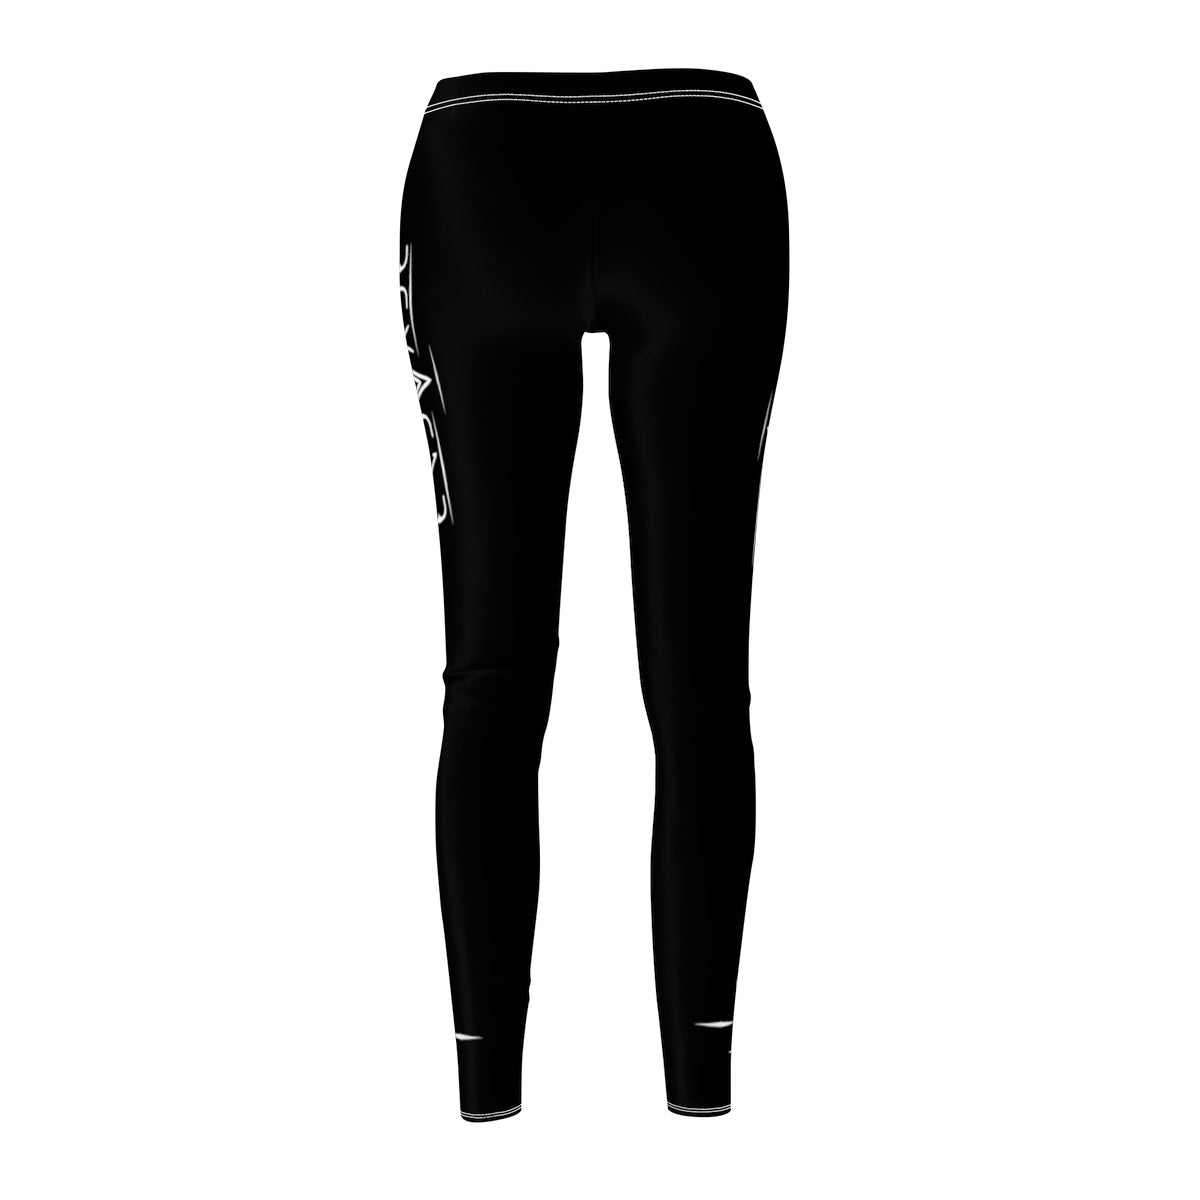 Endvade Women's Cut & Sew Casual Leggings